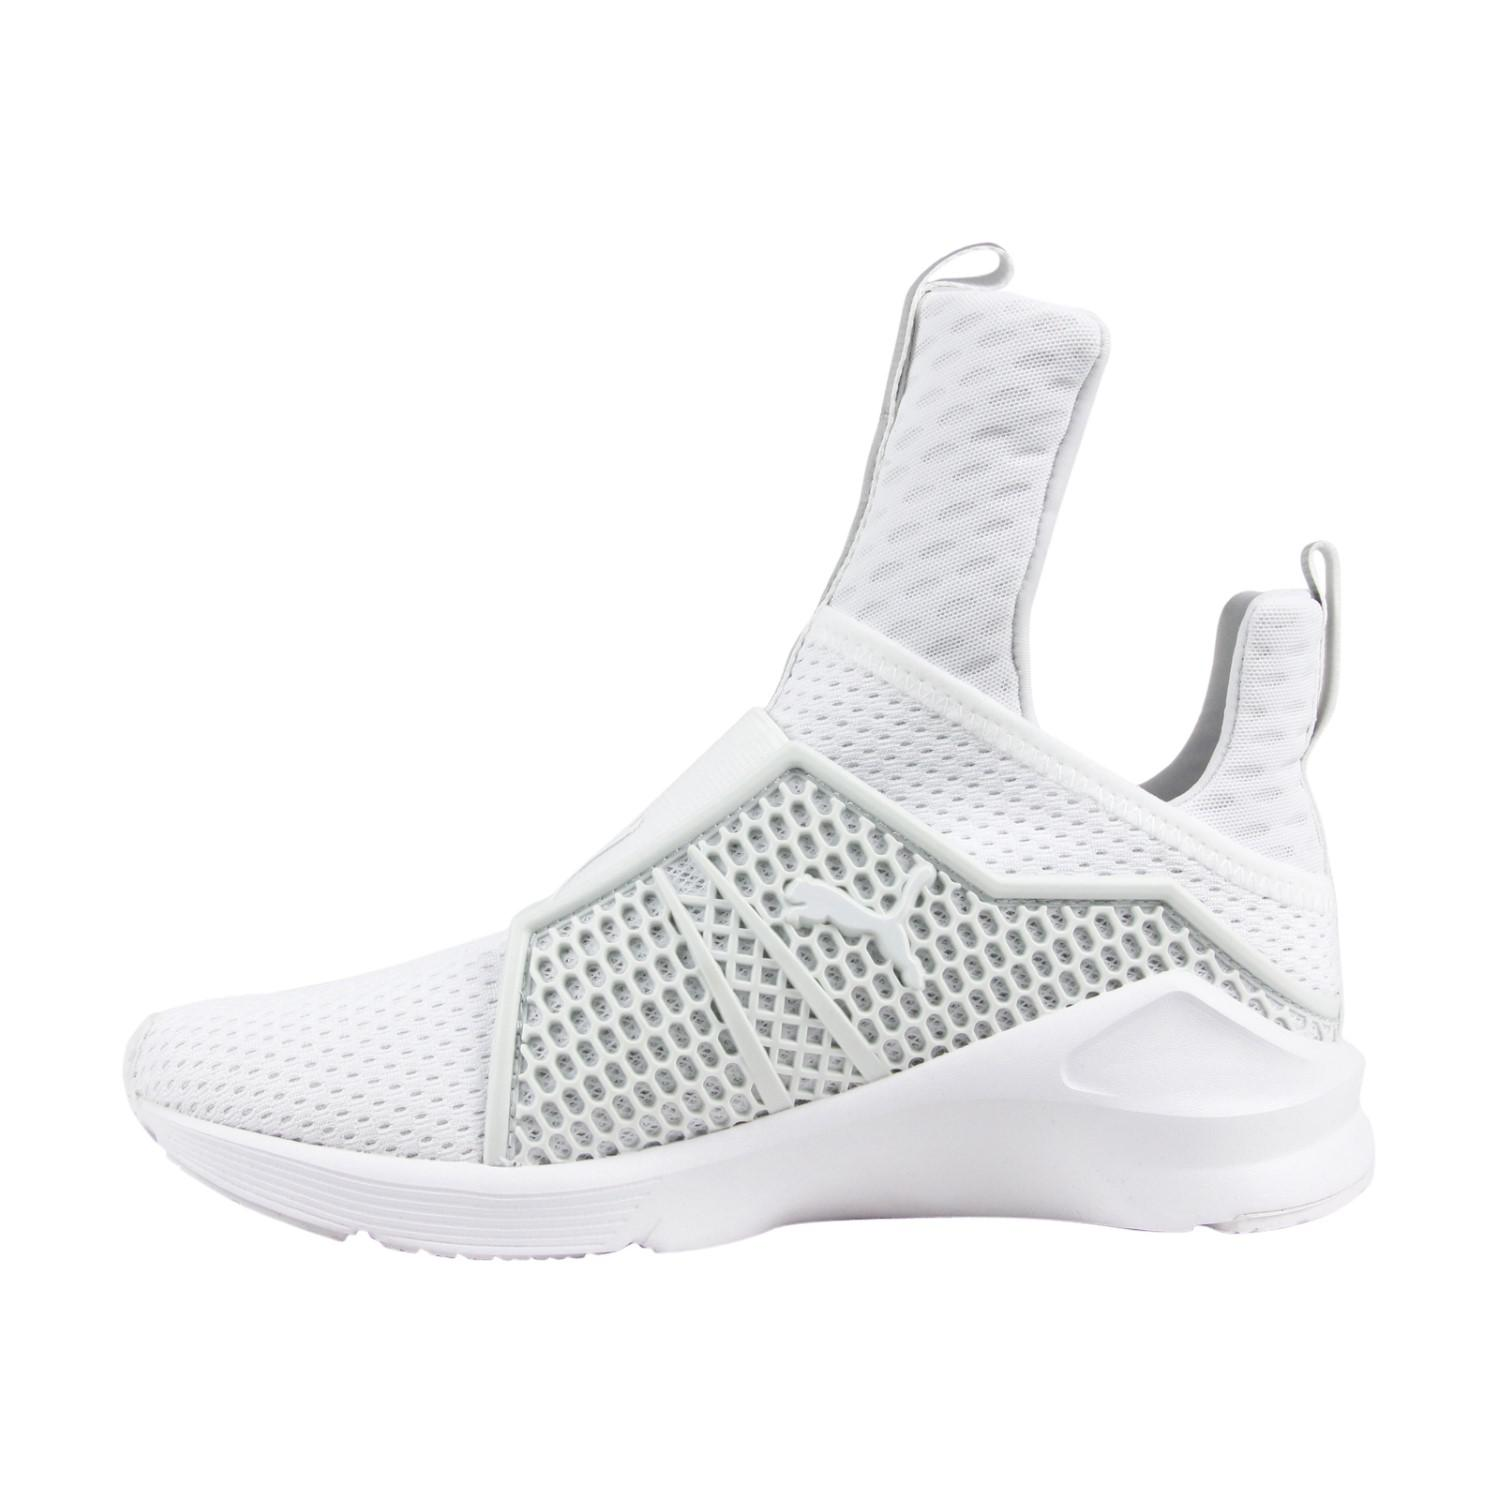 super popular 9ec00 6b526 Lyst - Puma Fenty Trainer White White Womens Athletic ...